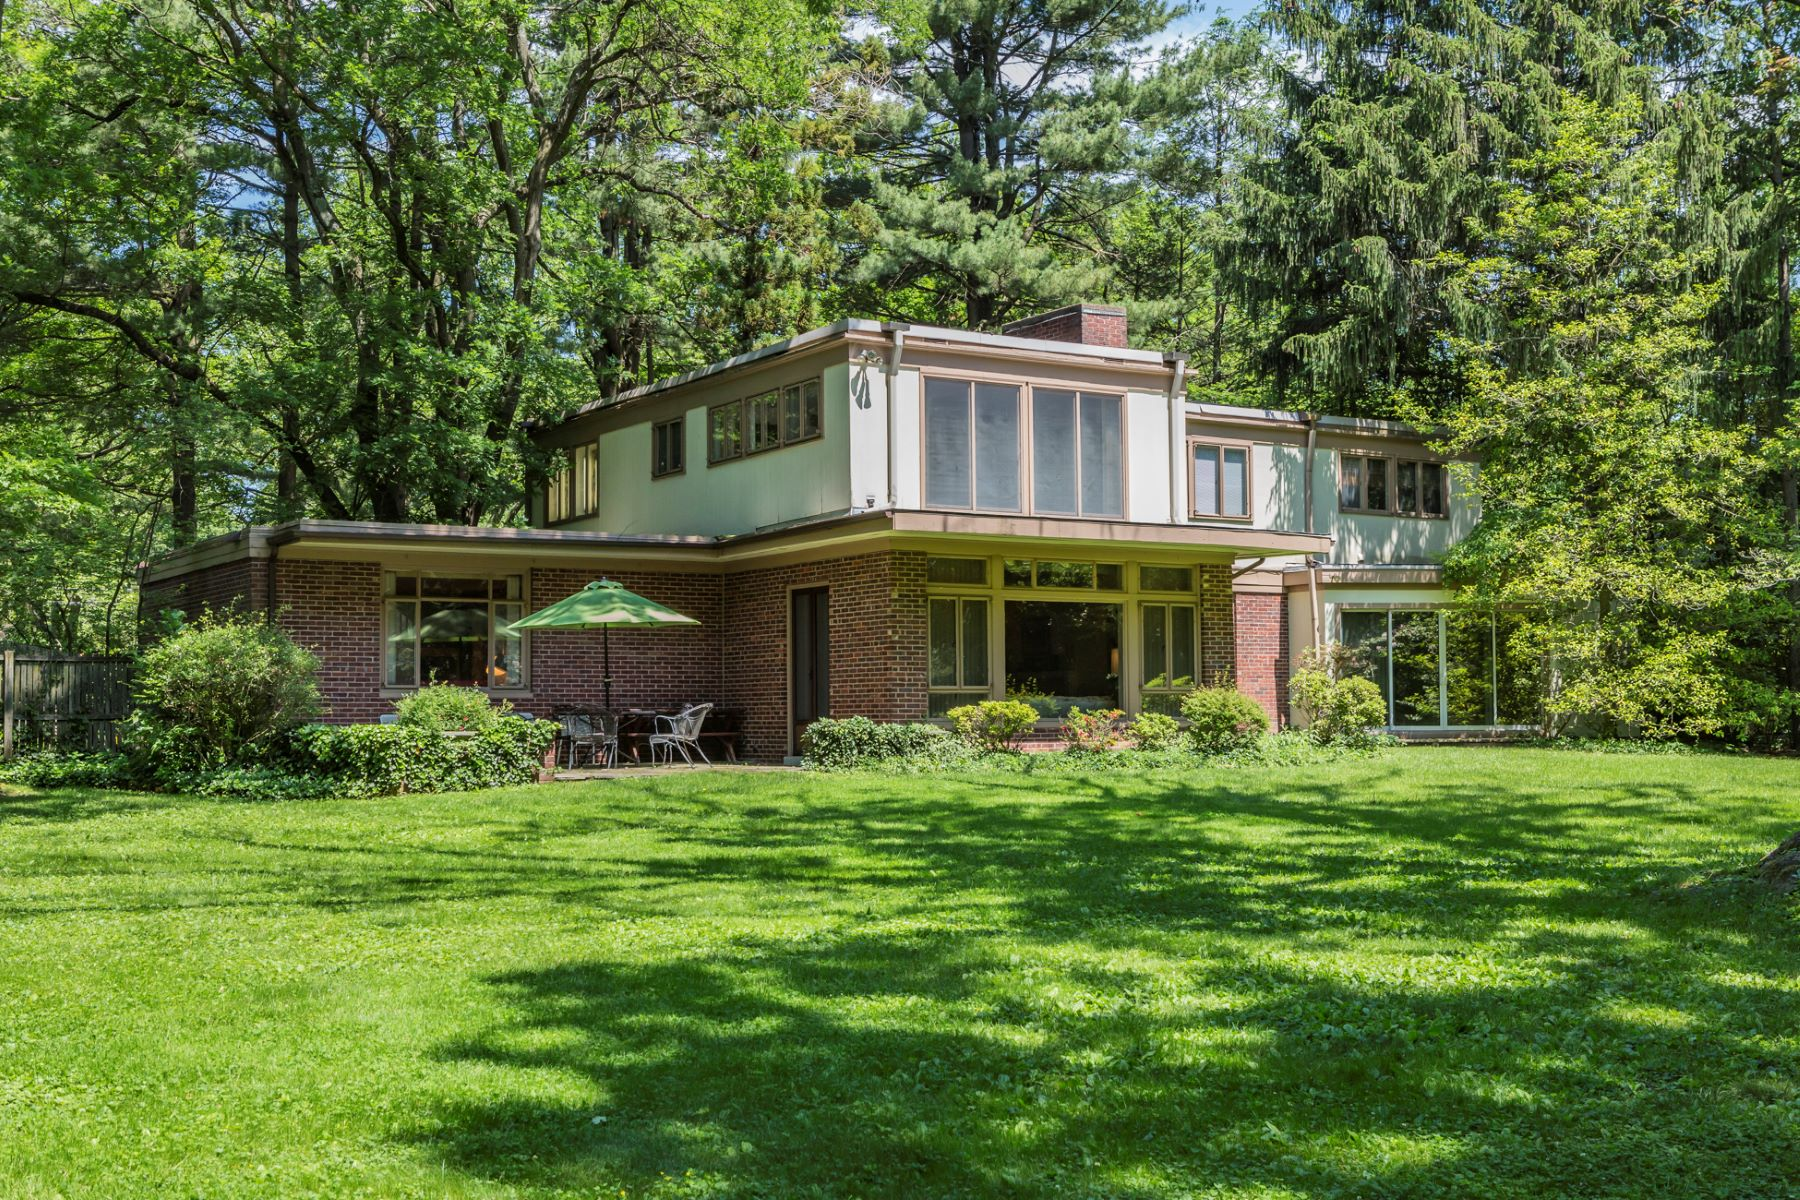 Single Family Home for Sale at A True Mid Century Modern and an Emerald Landscape 84 Allison Road, Princeton, New Jersey 08540 United States